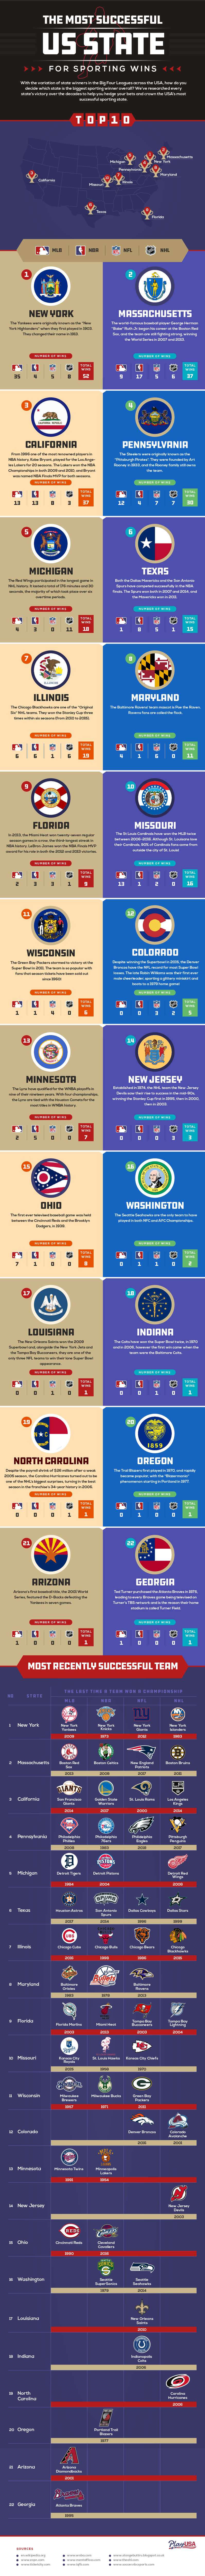 The Most Successful US State for Sporting Wins infographic